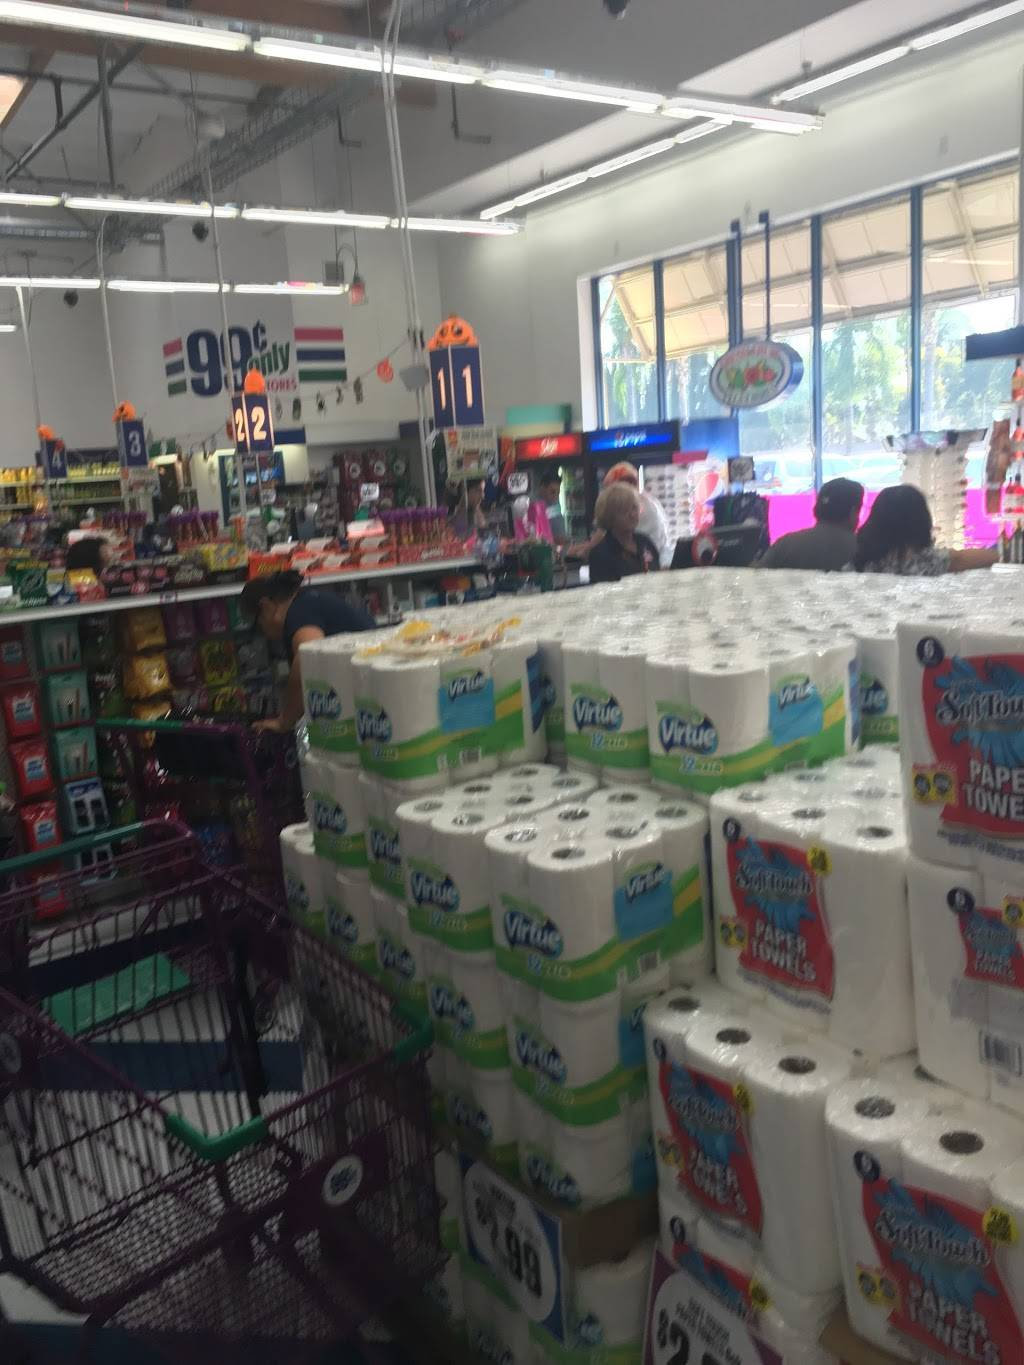 99 Cents Only Stores - supermarket  | Photo 8 of 10 | Address: 789 S Tustin St, Orange, CA 92866, USA | Phone: (714) 289-9992